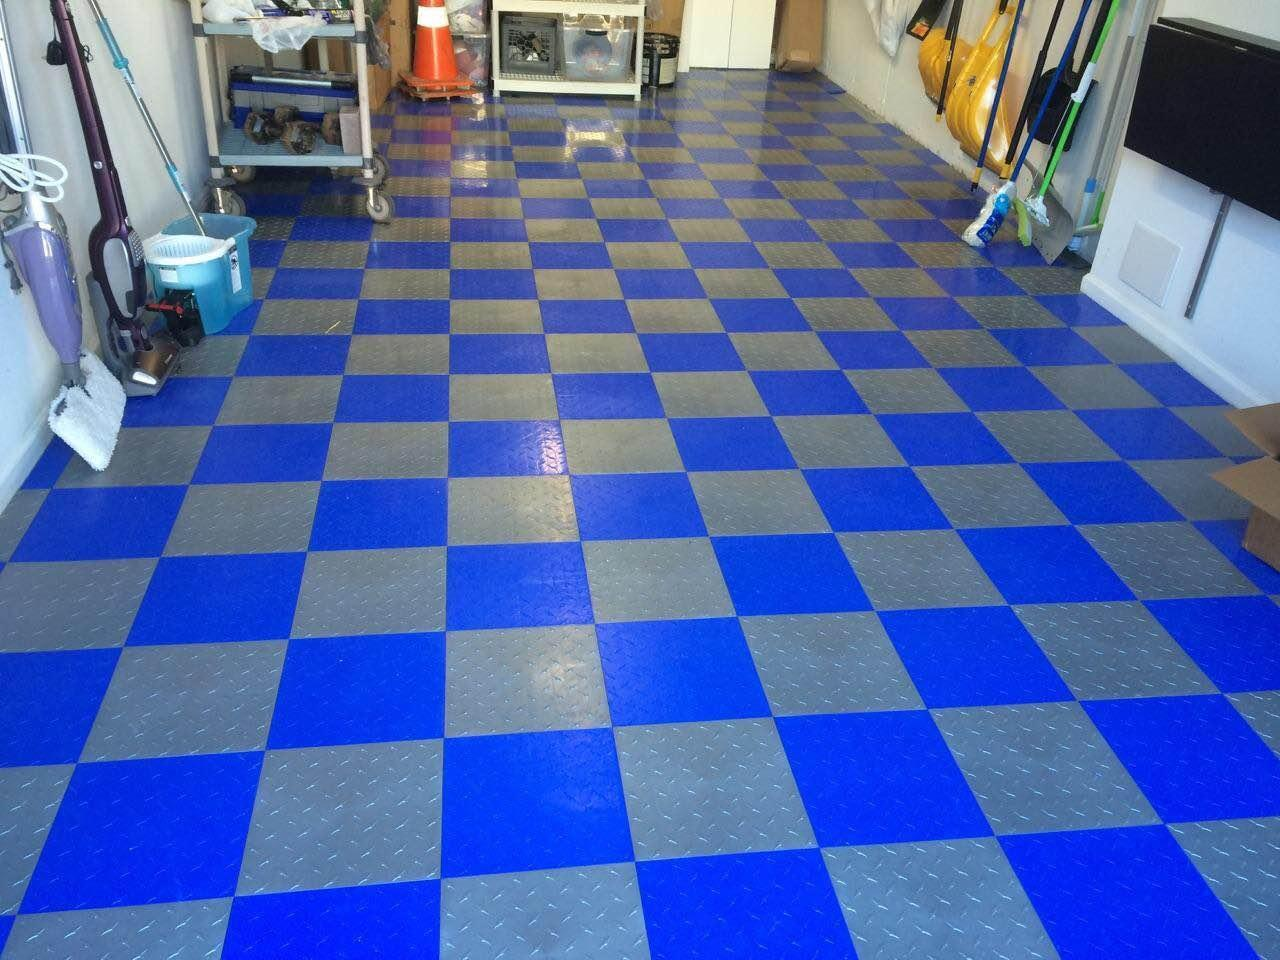 Amazon.com: Speedway Garage Tile Interlocking Garage Flooring 6 LOCK ...